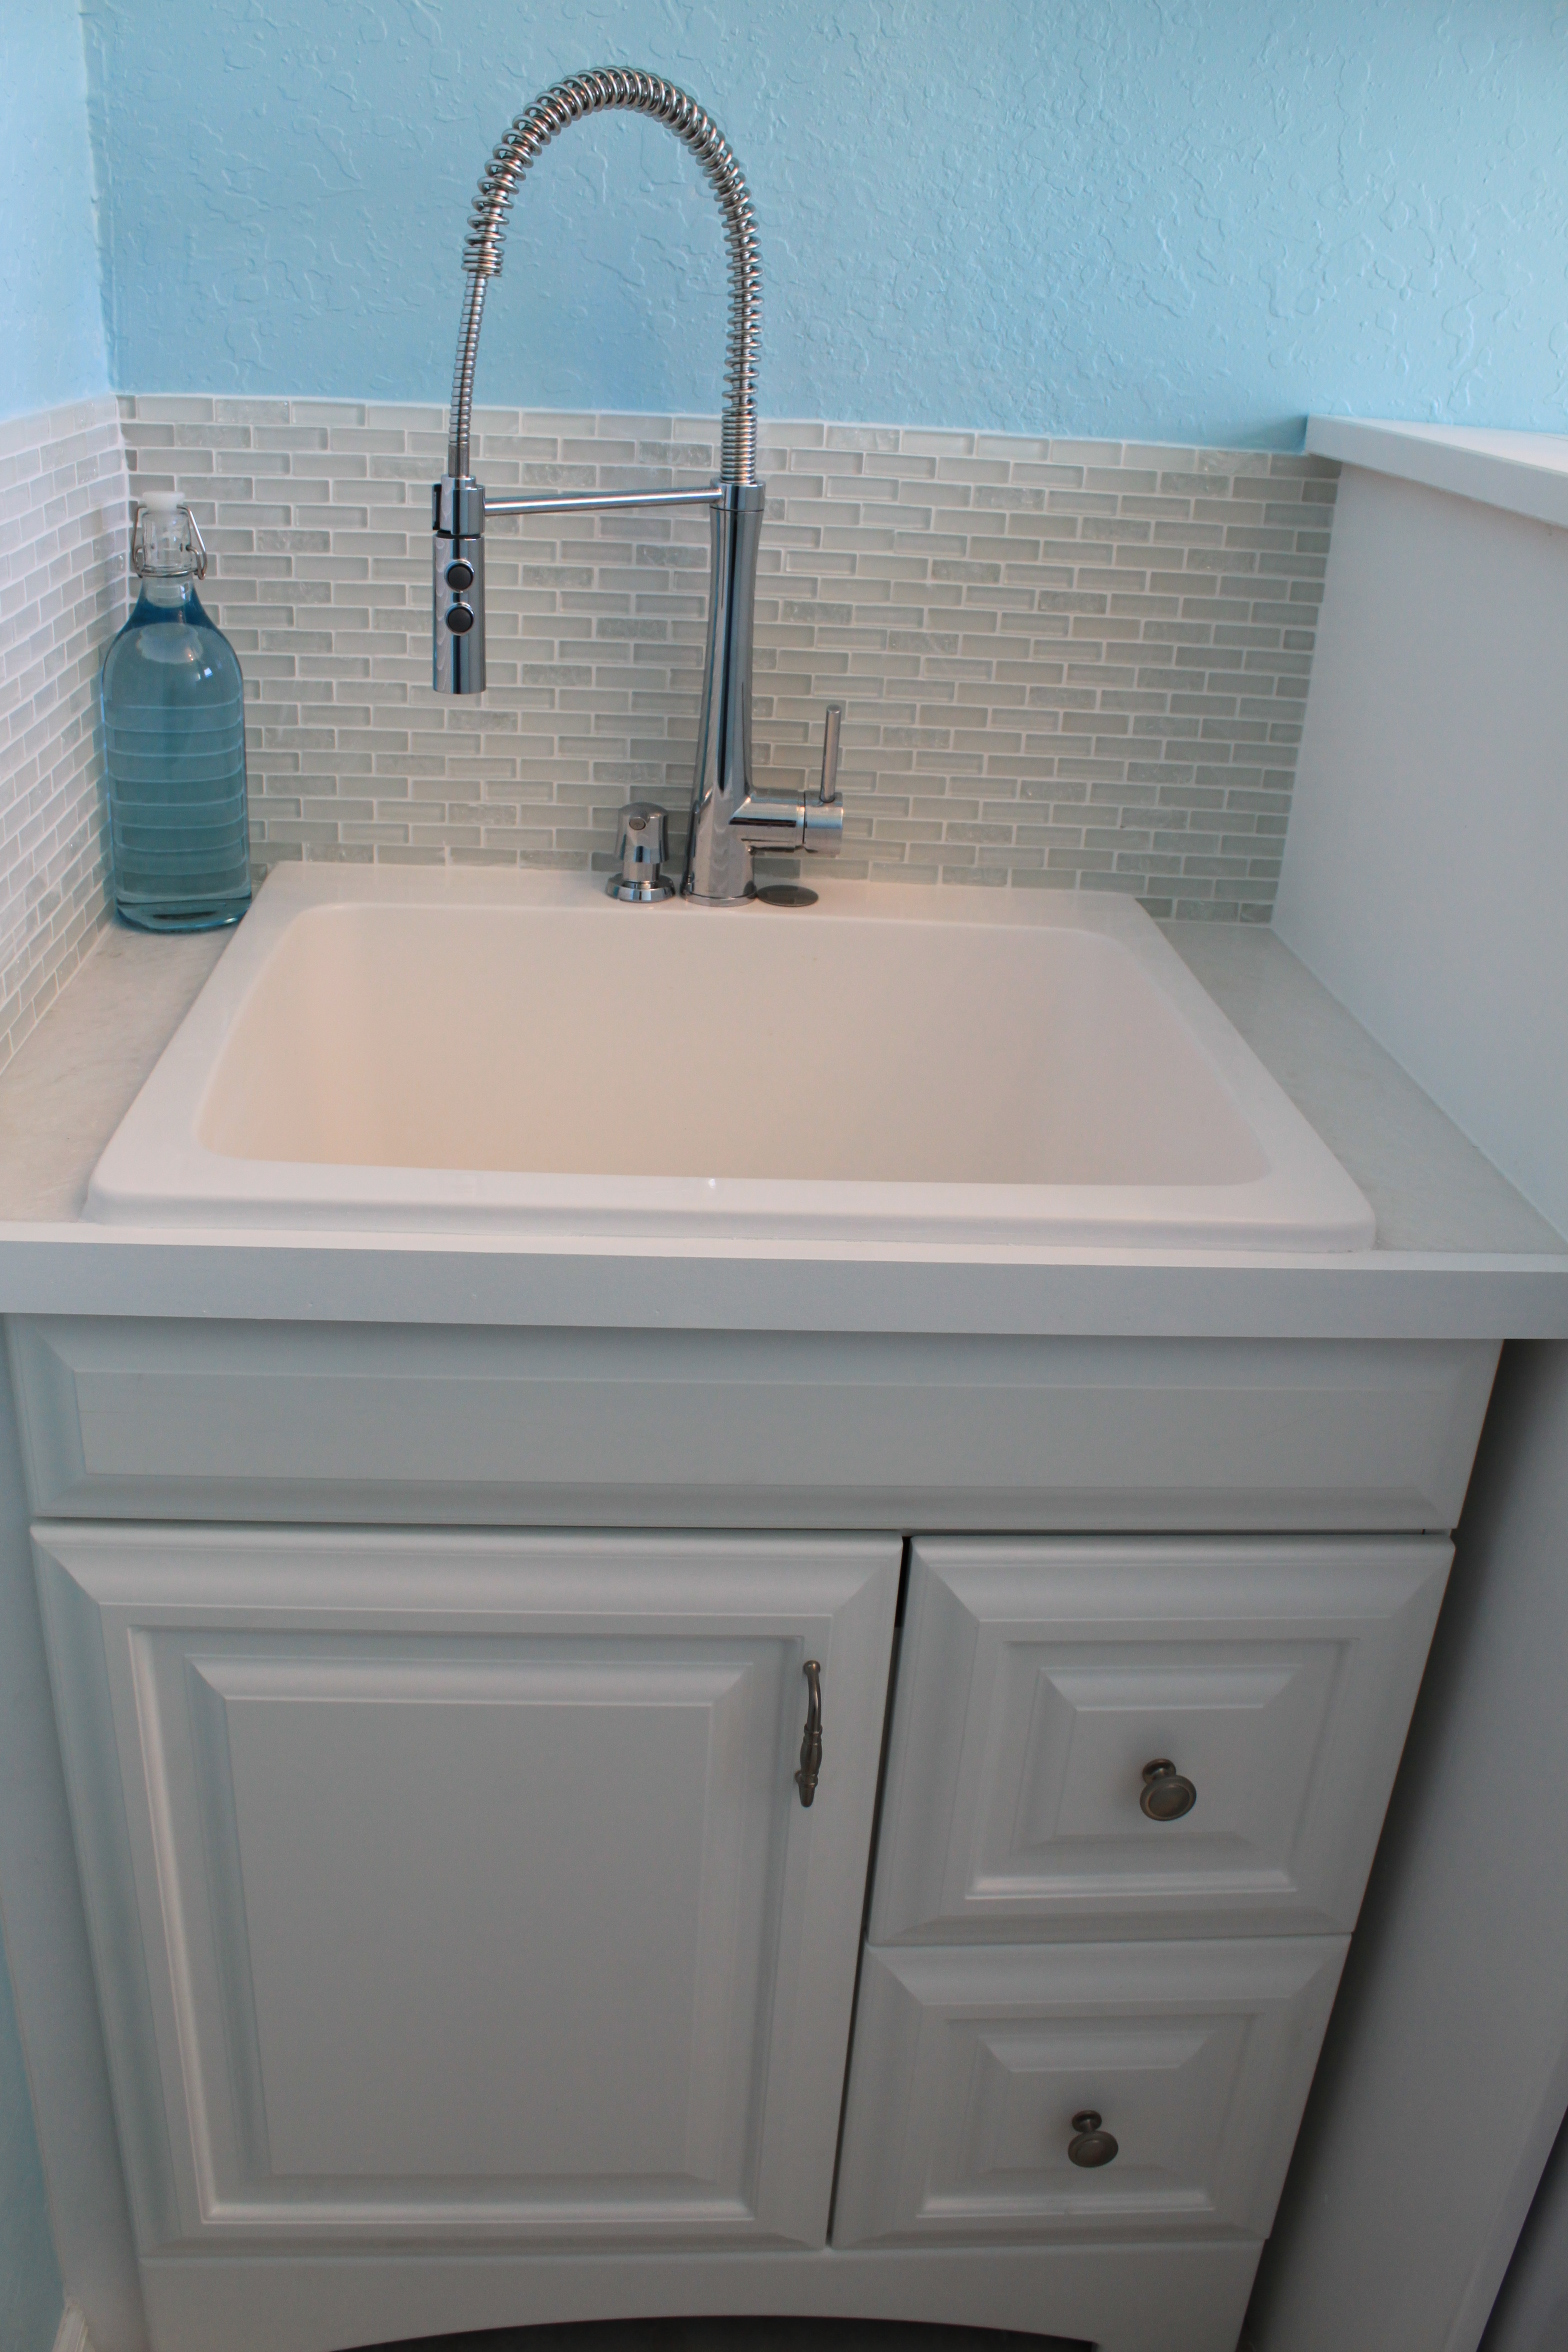 laundry sink with faucet and tile backsplash